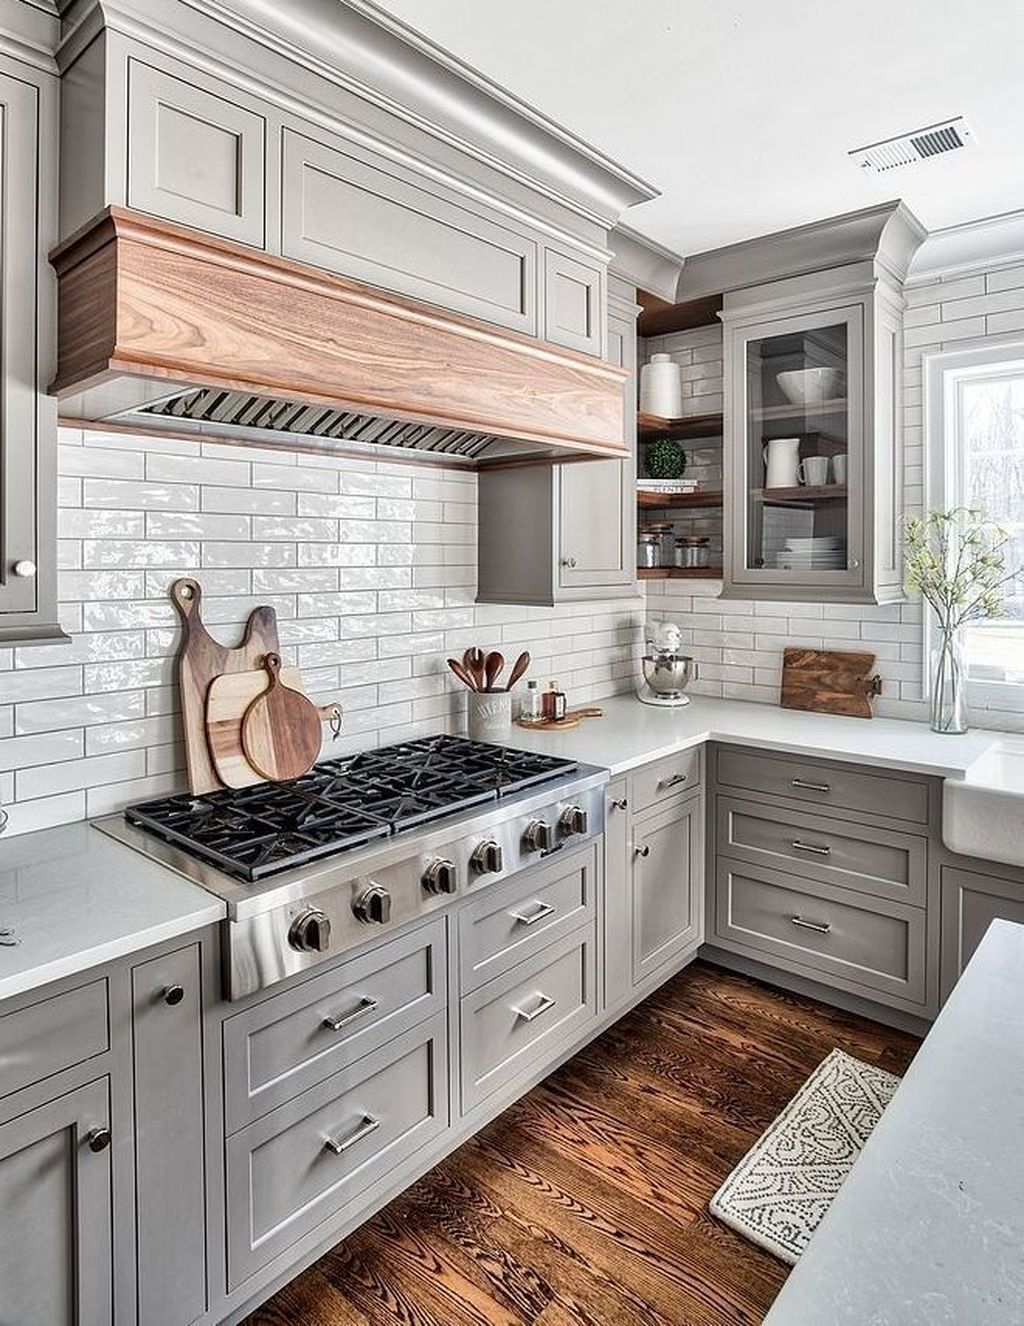 48 cute kitchen design ideas (with images) | grey kitchen